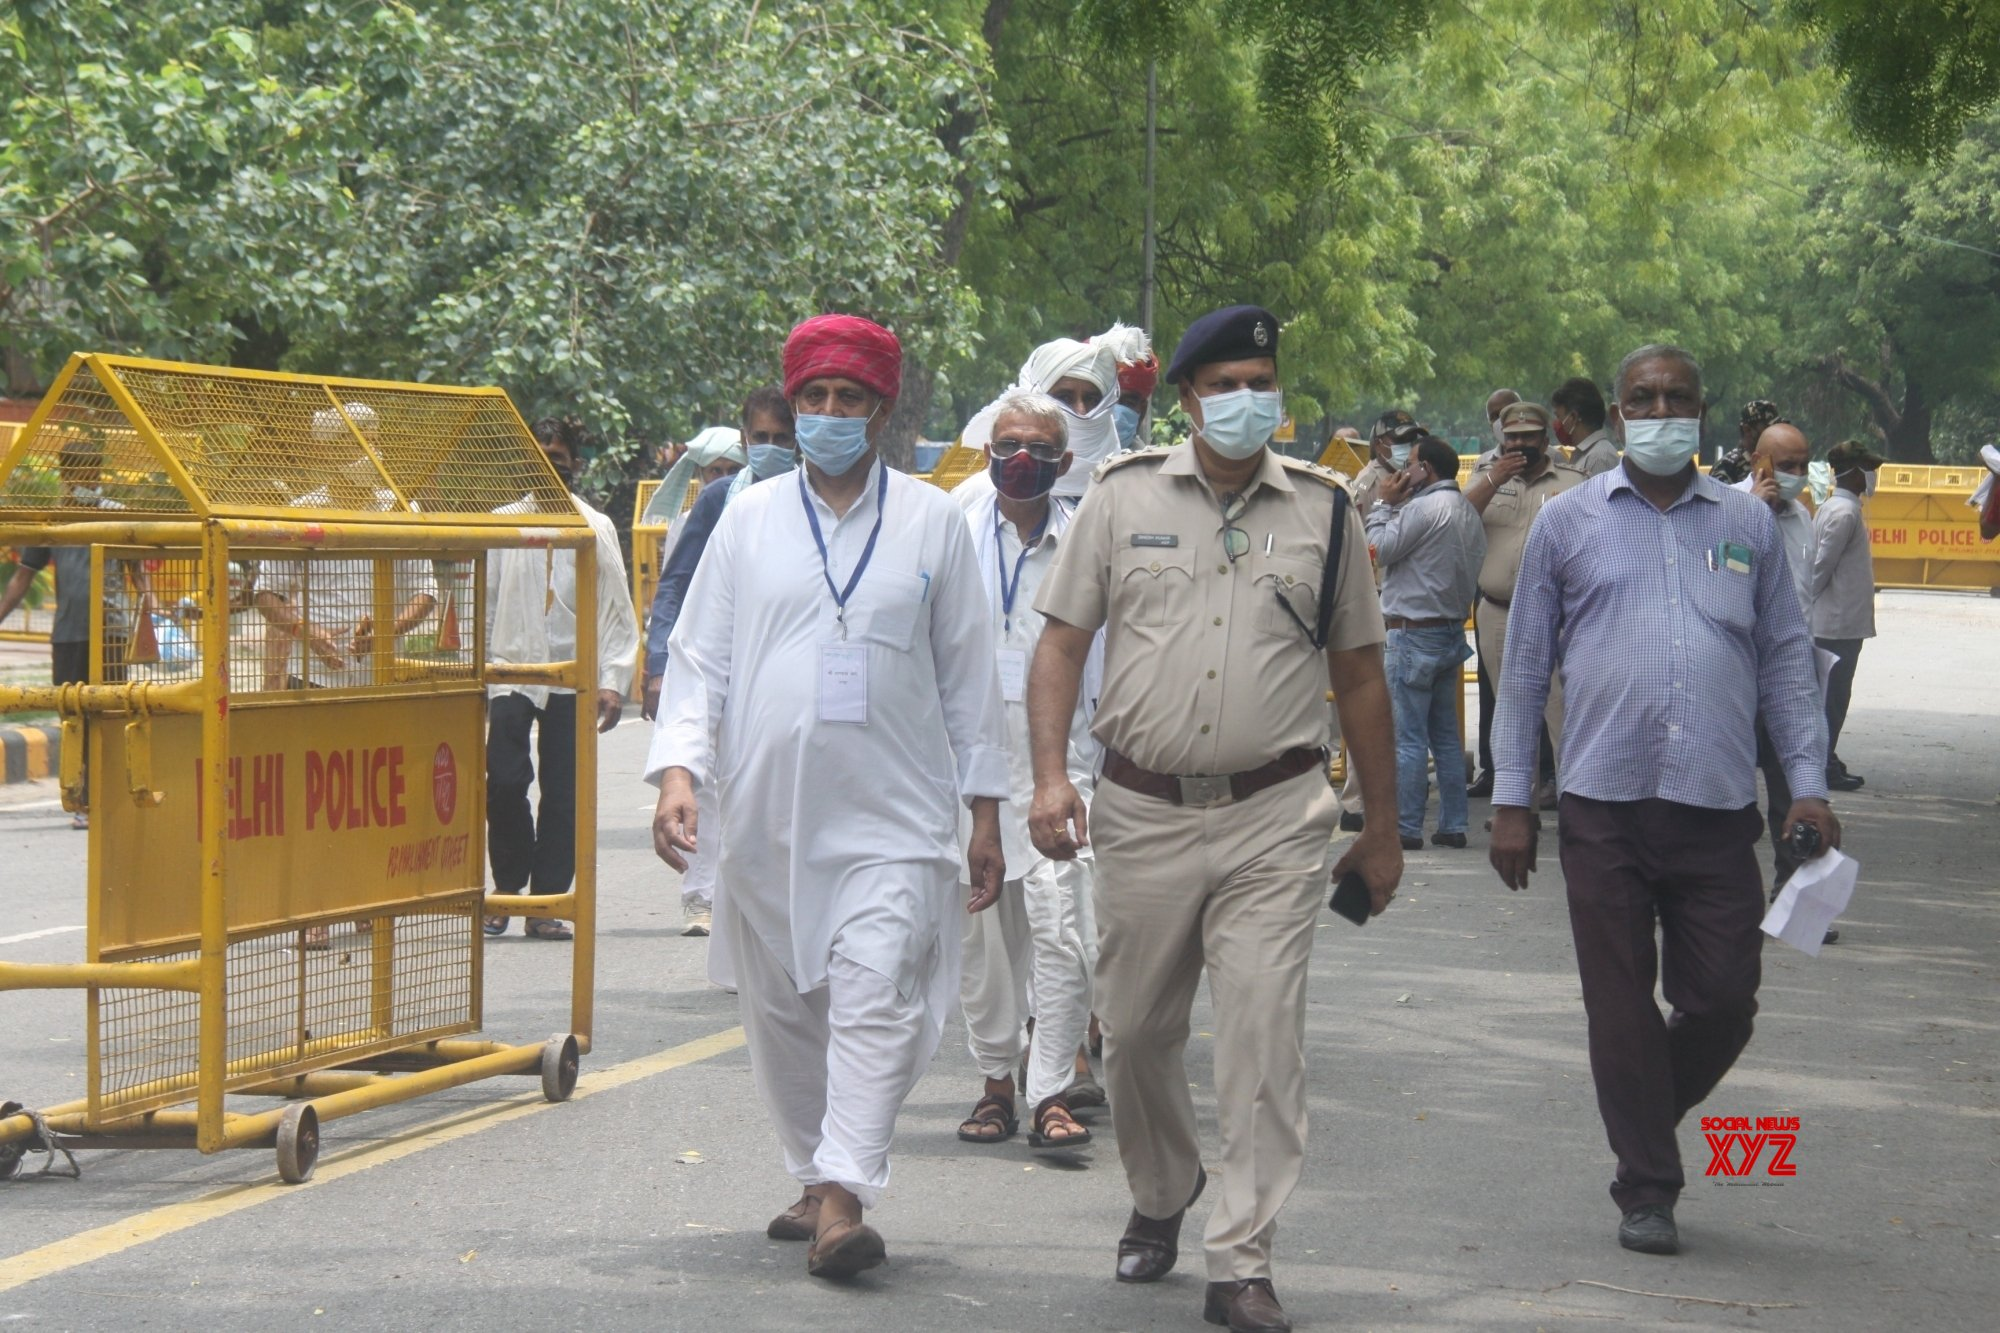 New Delhi : Farmers head for Jantar Mantar ahead of three - day sit - in even as Delhi Police allows only 100 people to protest in New Delhi #Gallery